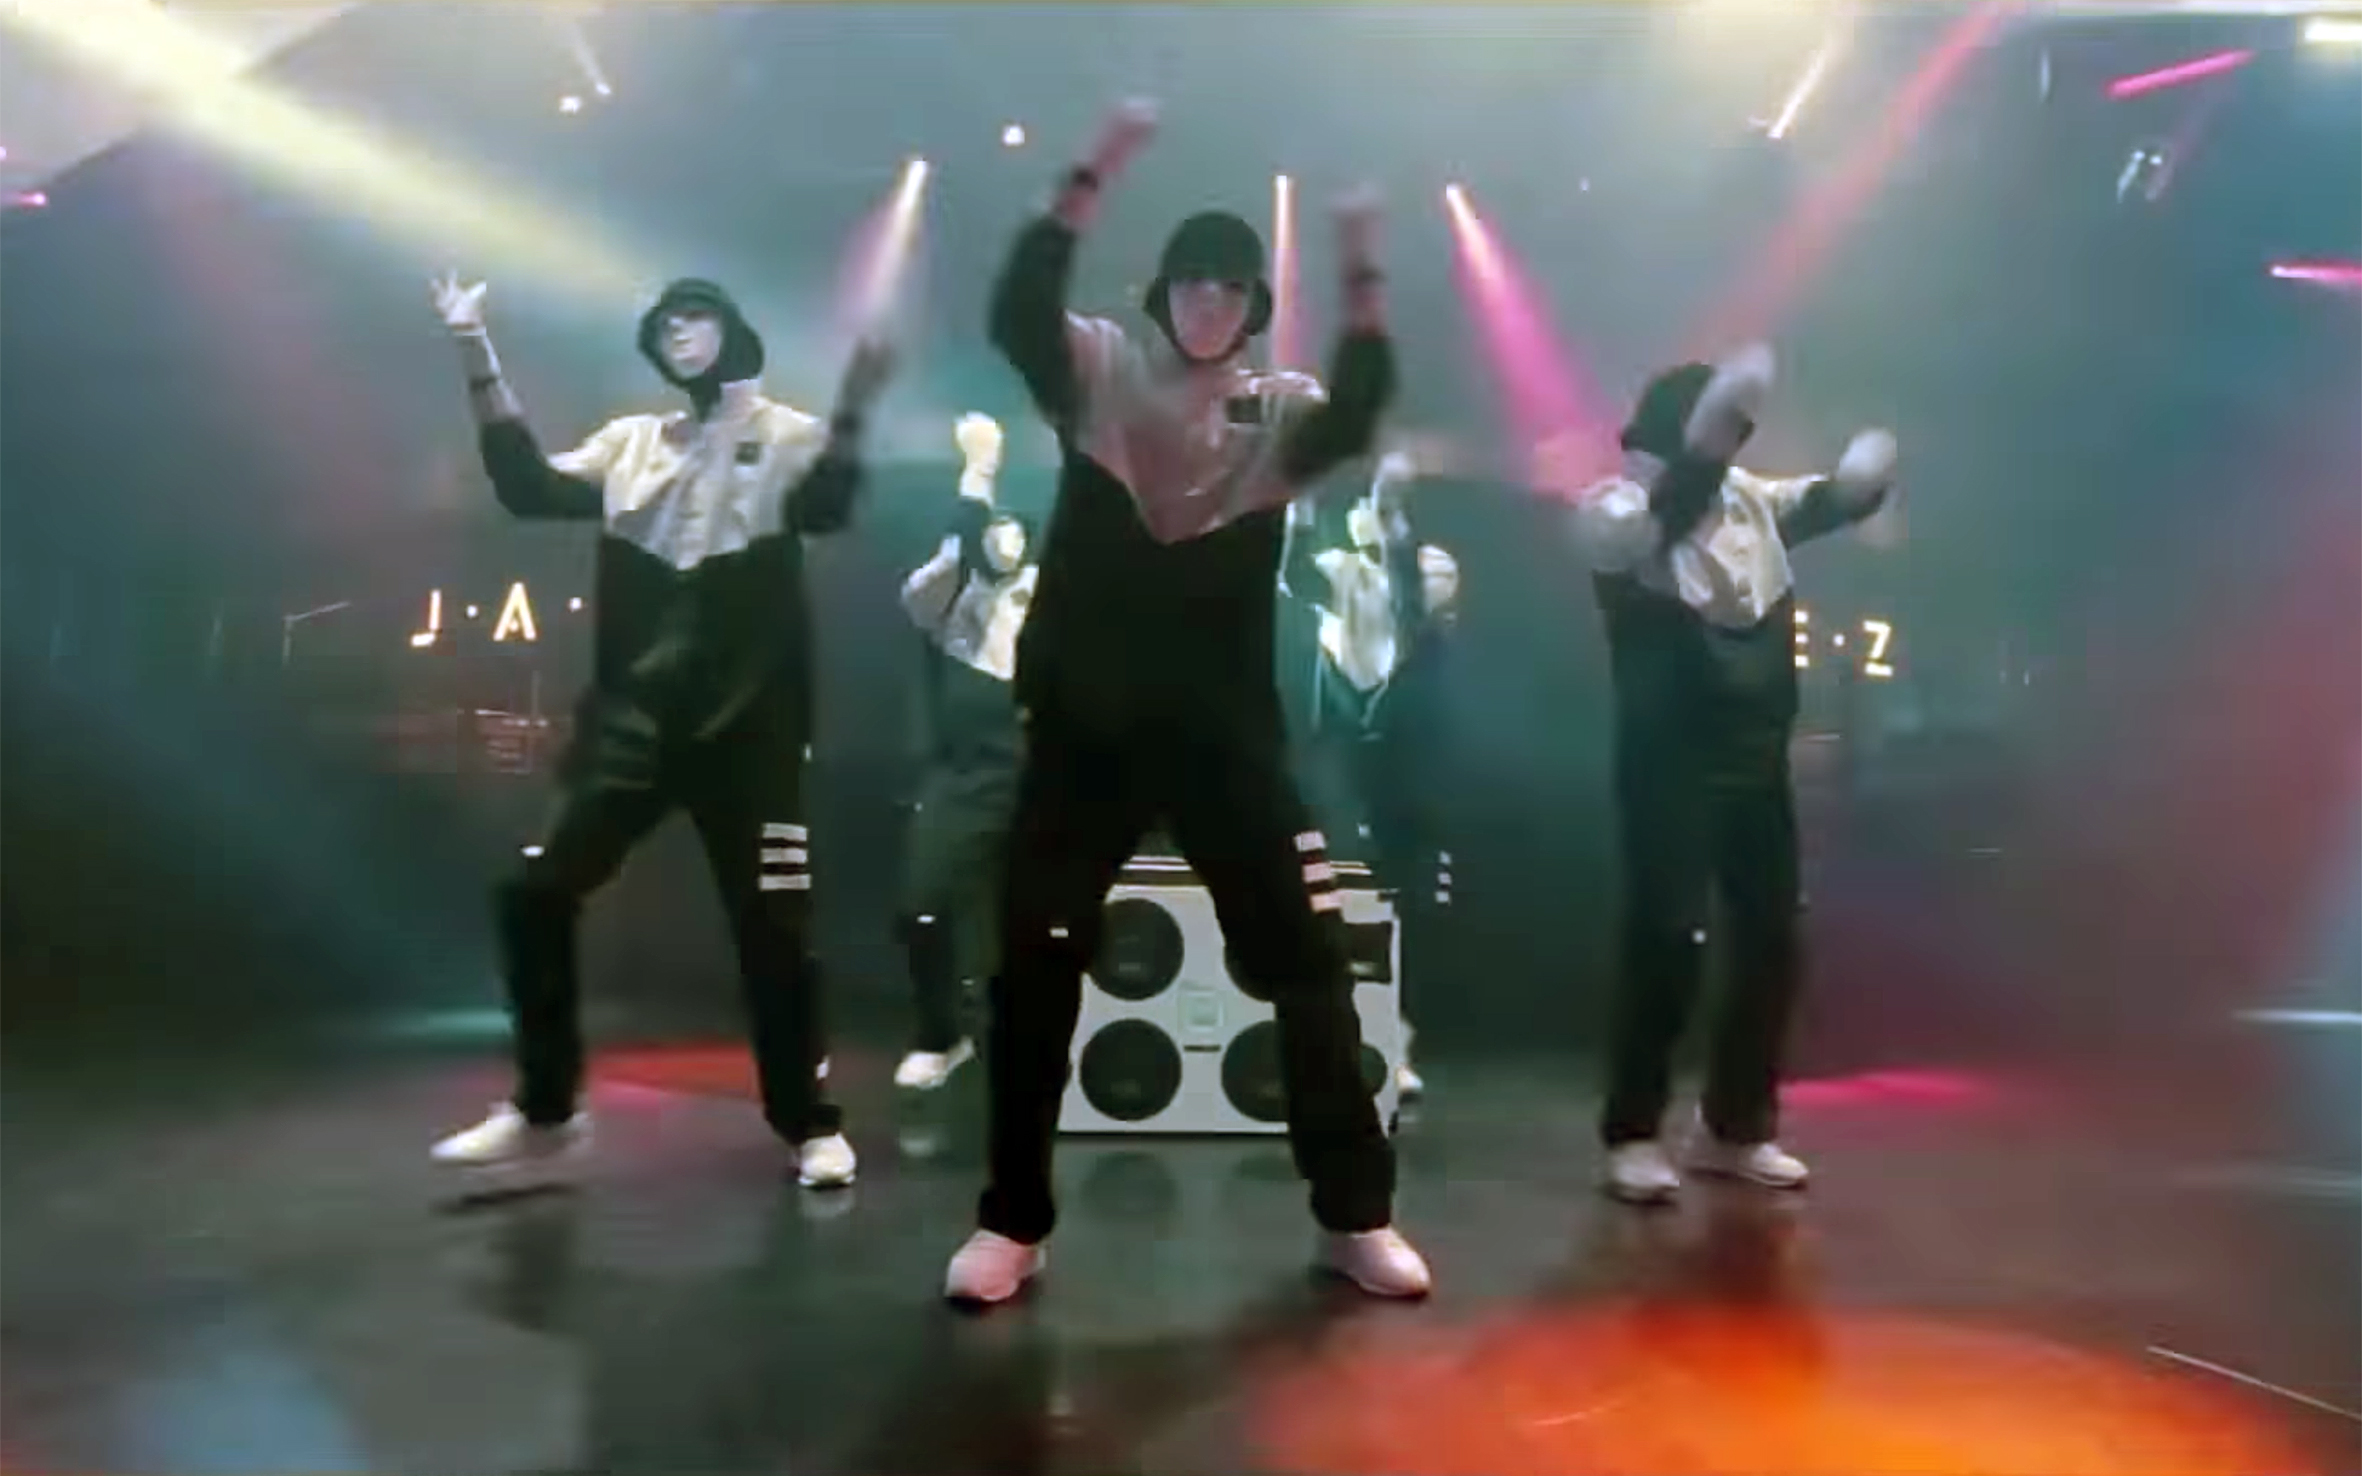 415.JABBAWOCKEEZ DANCE / USA - JABBAWOCKEEZ DANCE is a dance performed by an American hip-hop dance crew called JABBAWOCKEEZ, best known for being the winners of the first season of America's Best Dance Crew in 2008. They were initially formed by members Kevin